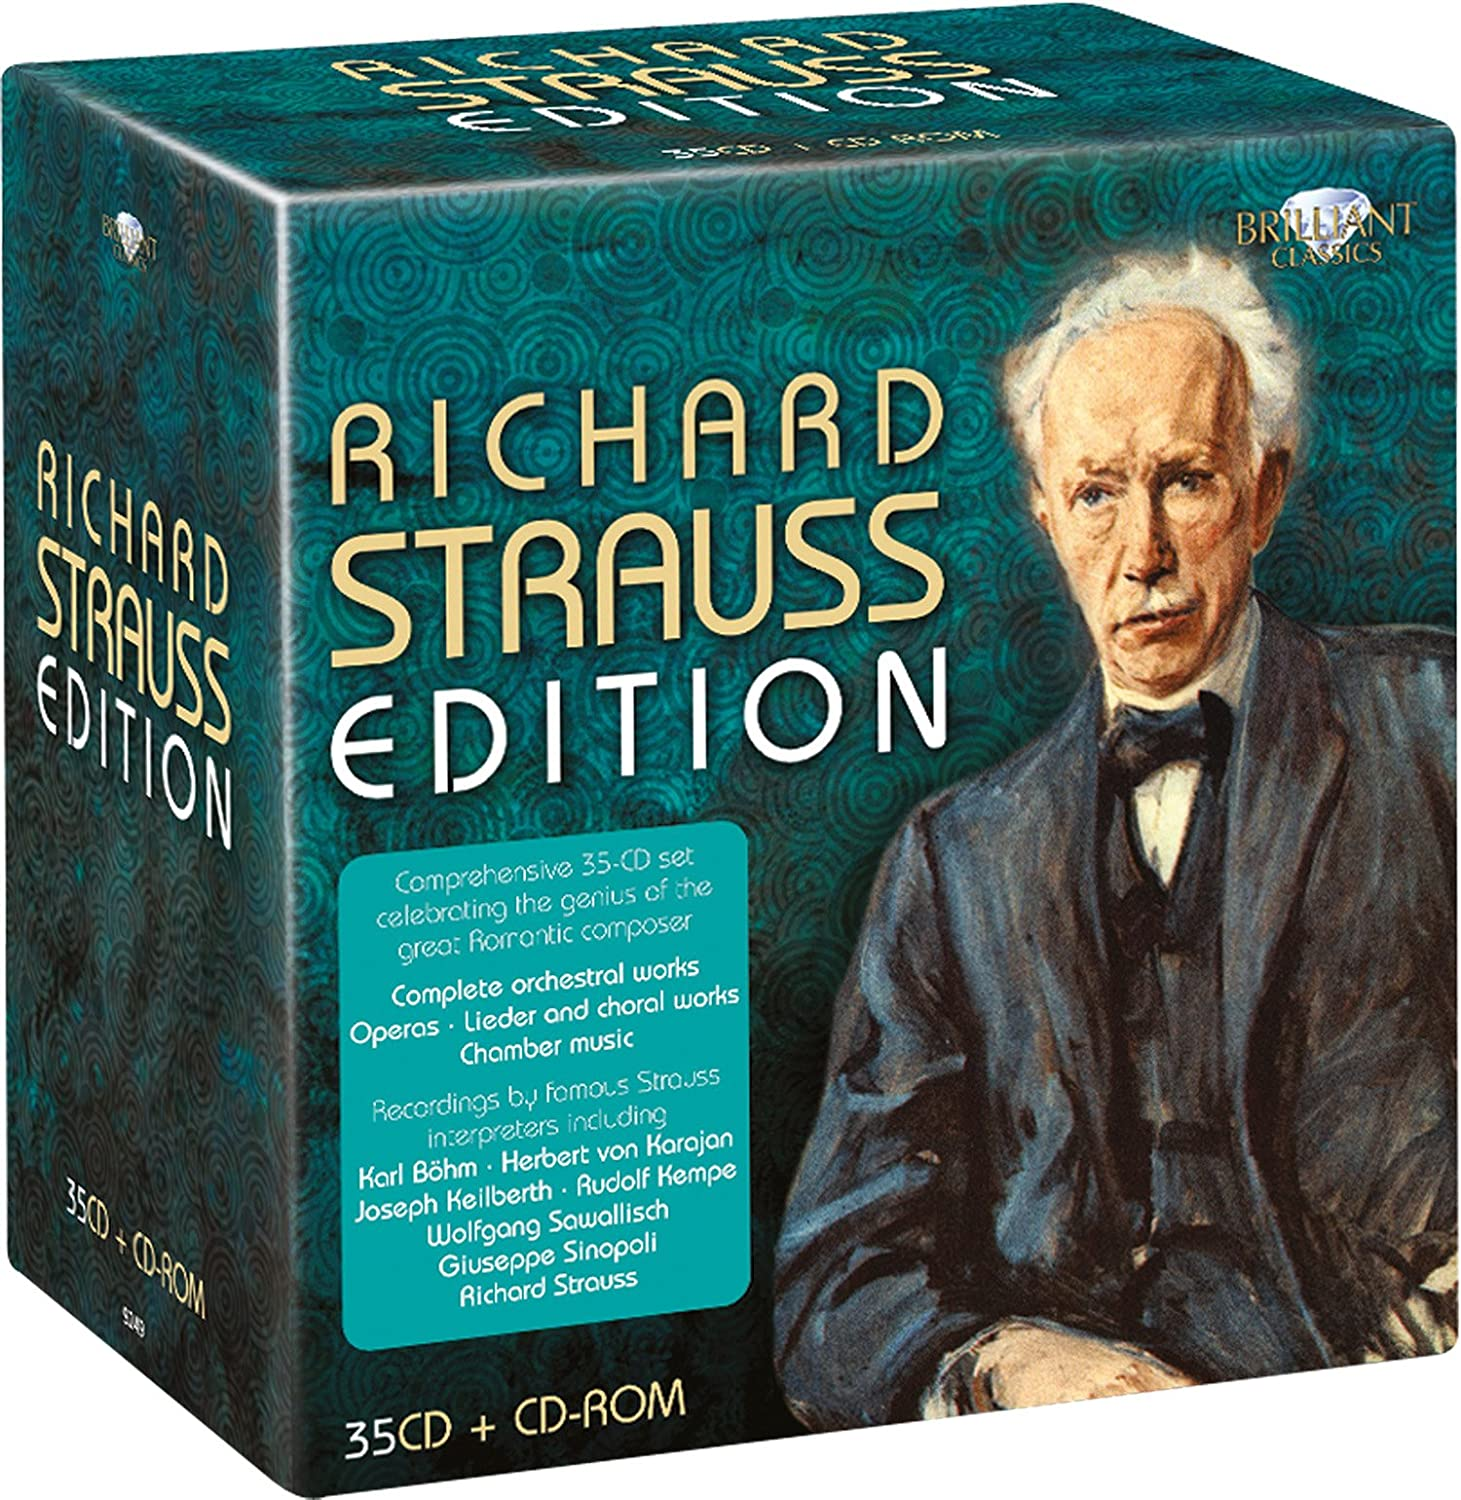 Richard Strauss (1864-1949) - Page 4 81V-NXAUc4L._SL1500_